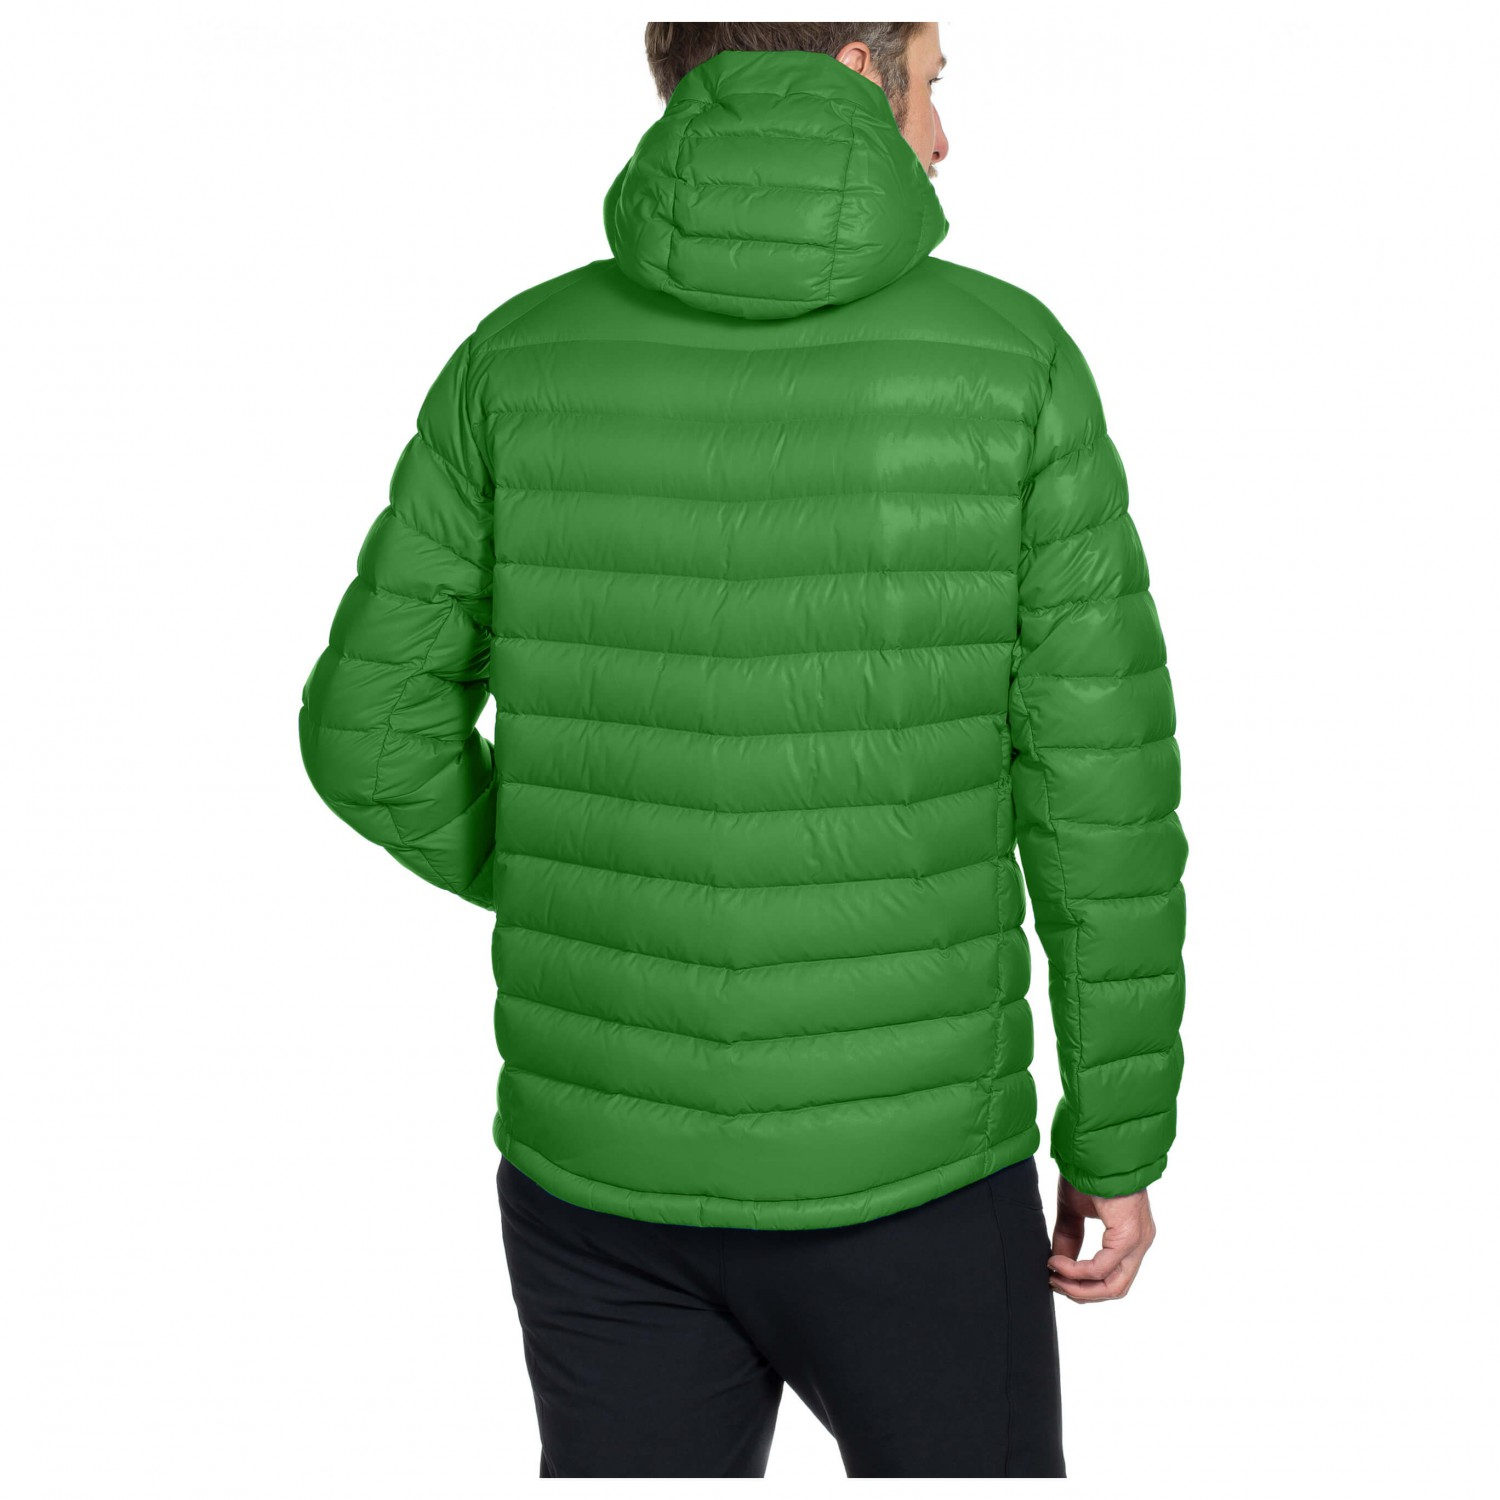 Vaude damen jacke kabru hooded jacket ii